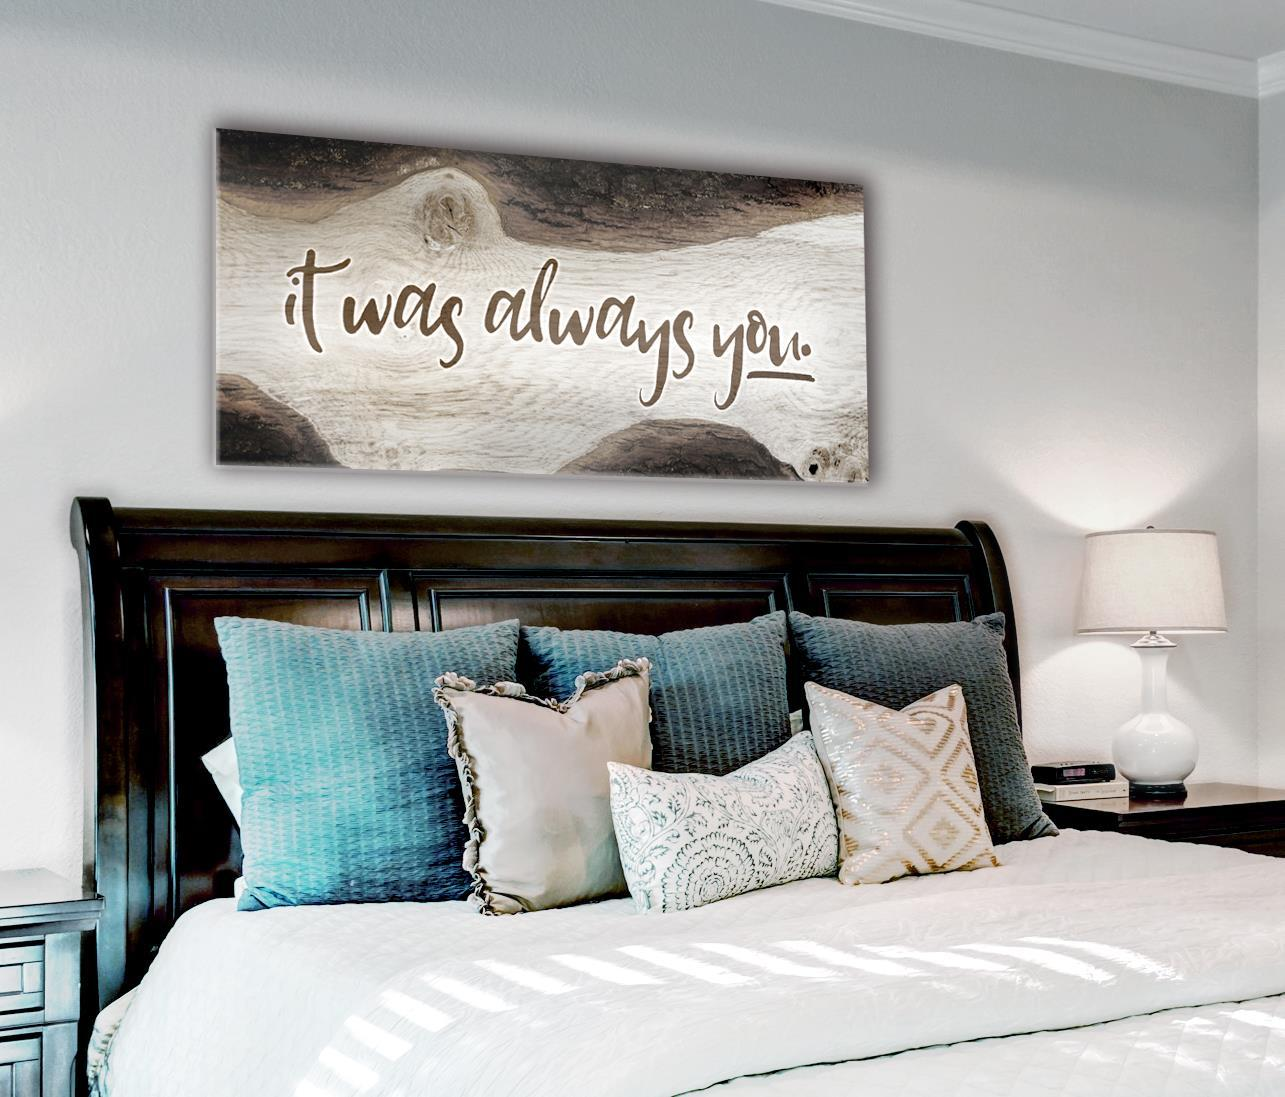 Bedroom Wall Art How Sweet It Is To Be Loved By You V3 Wood Frame Re Sense Of Art